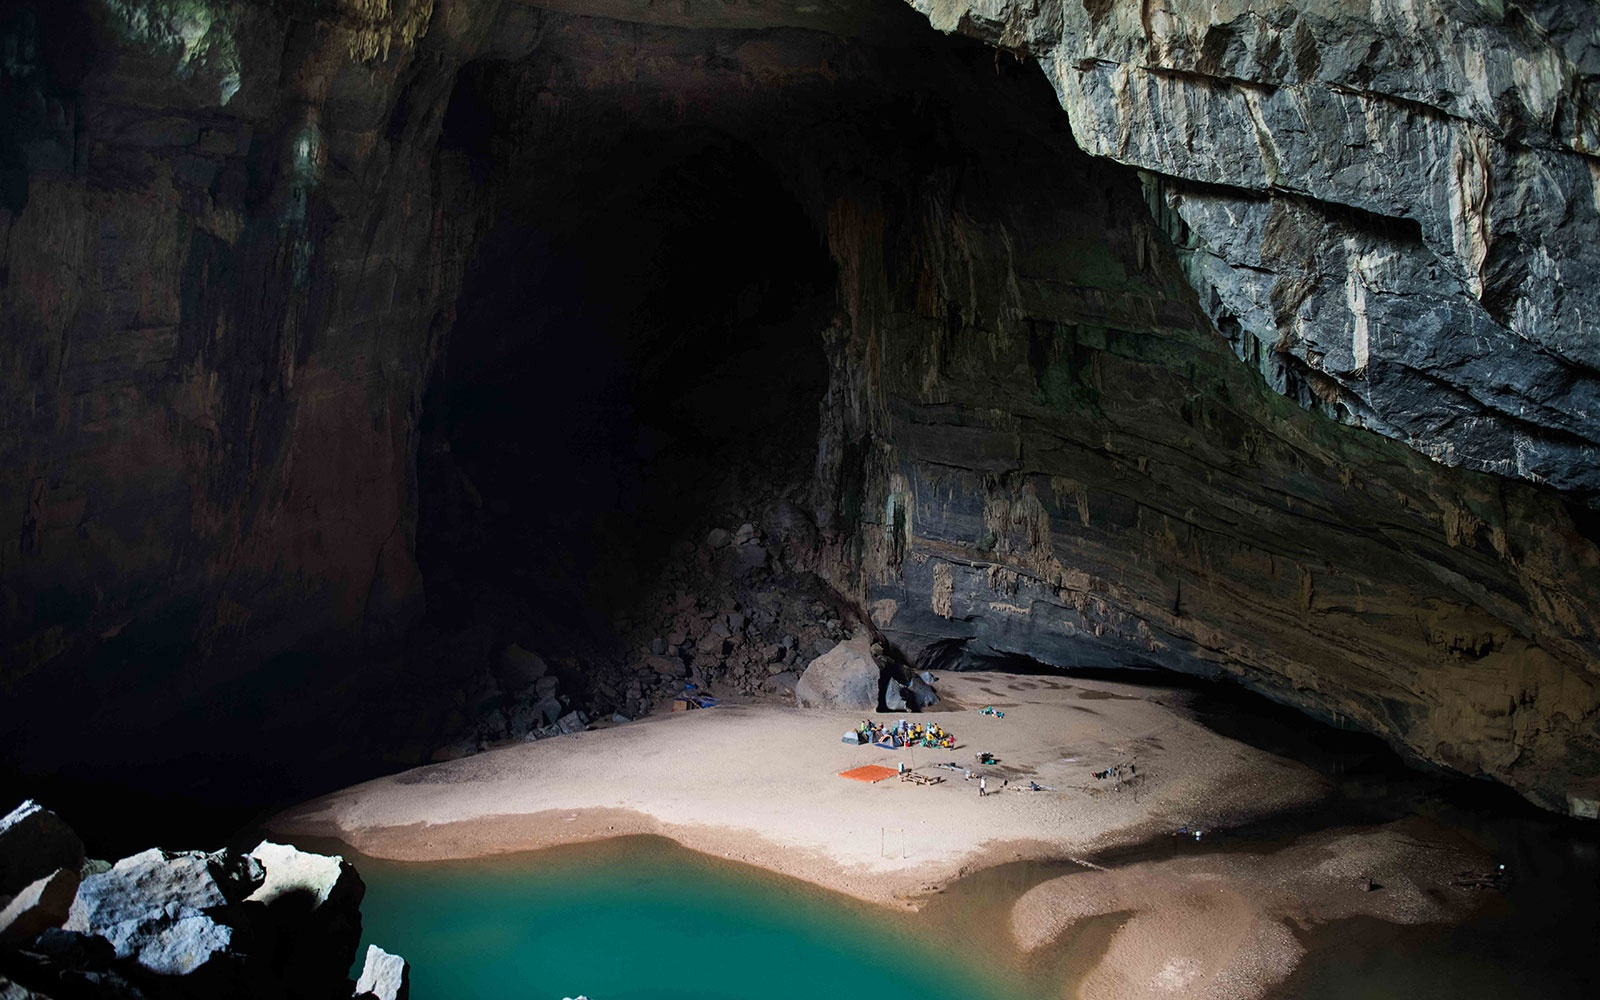 Hang En is the first cave on the Son Doong experience. Trekkers camp here on night one before following the river through the cave and onwards toward Son Doong itself